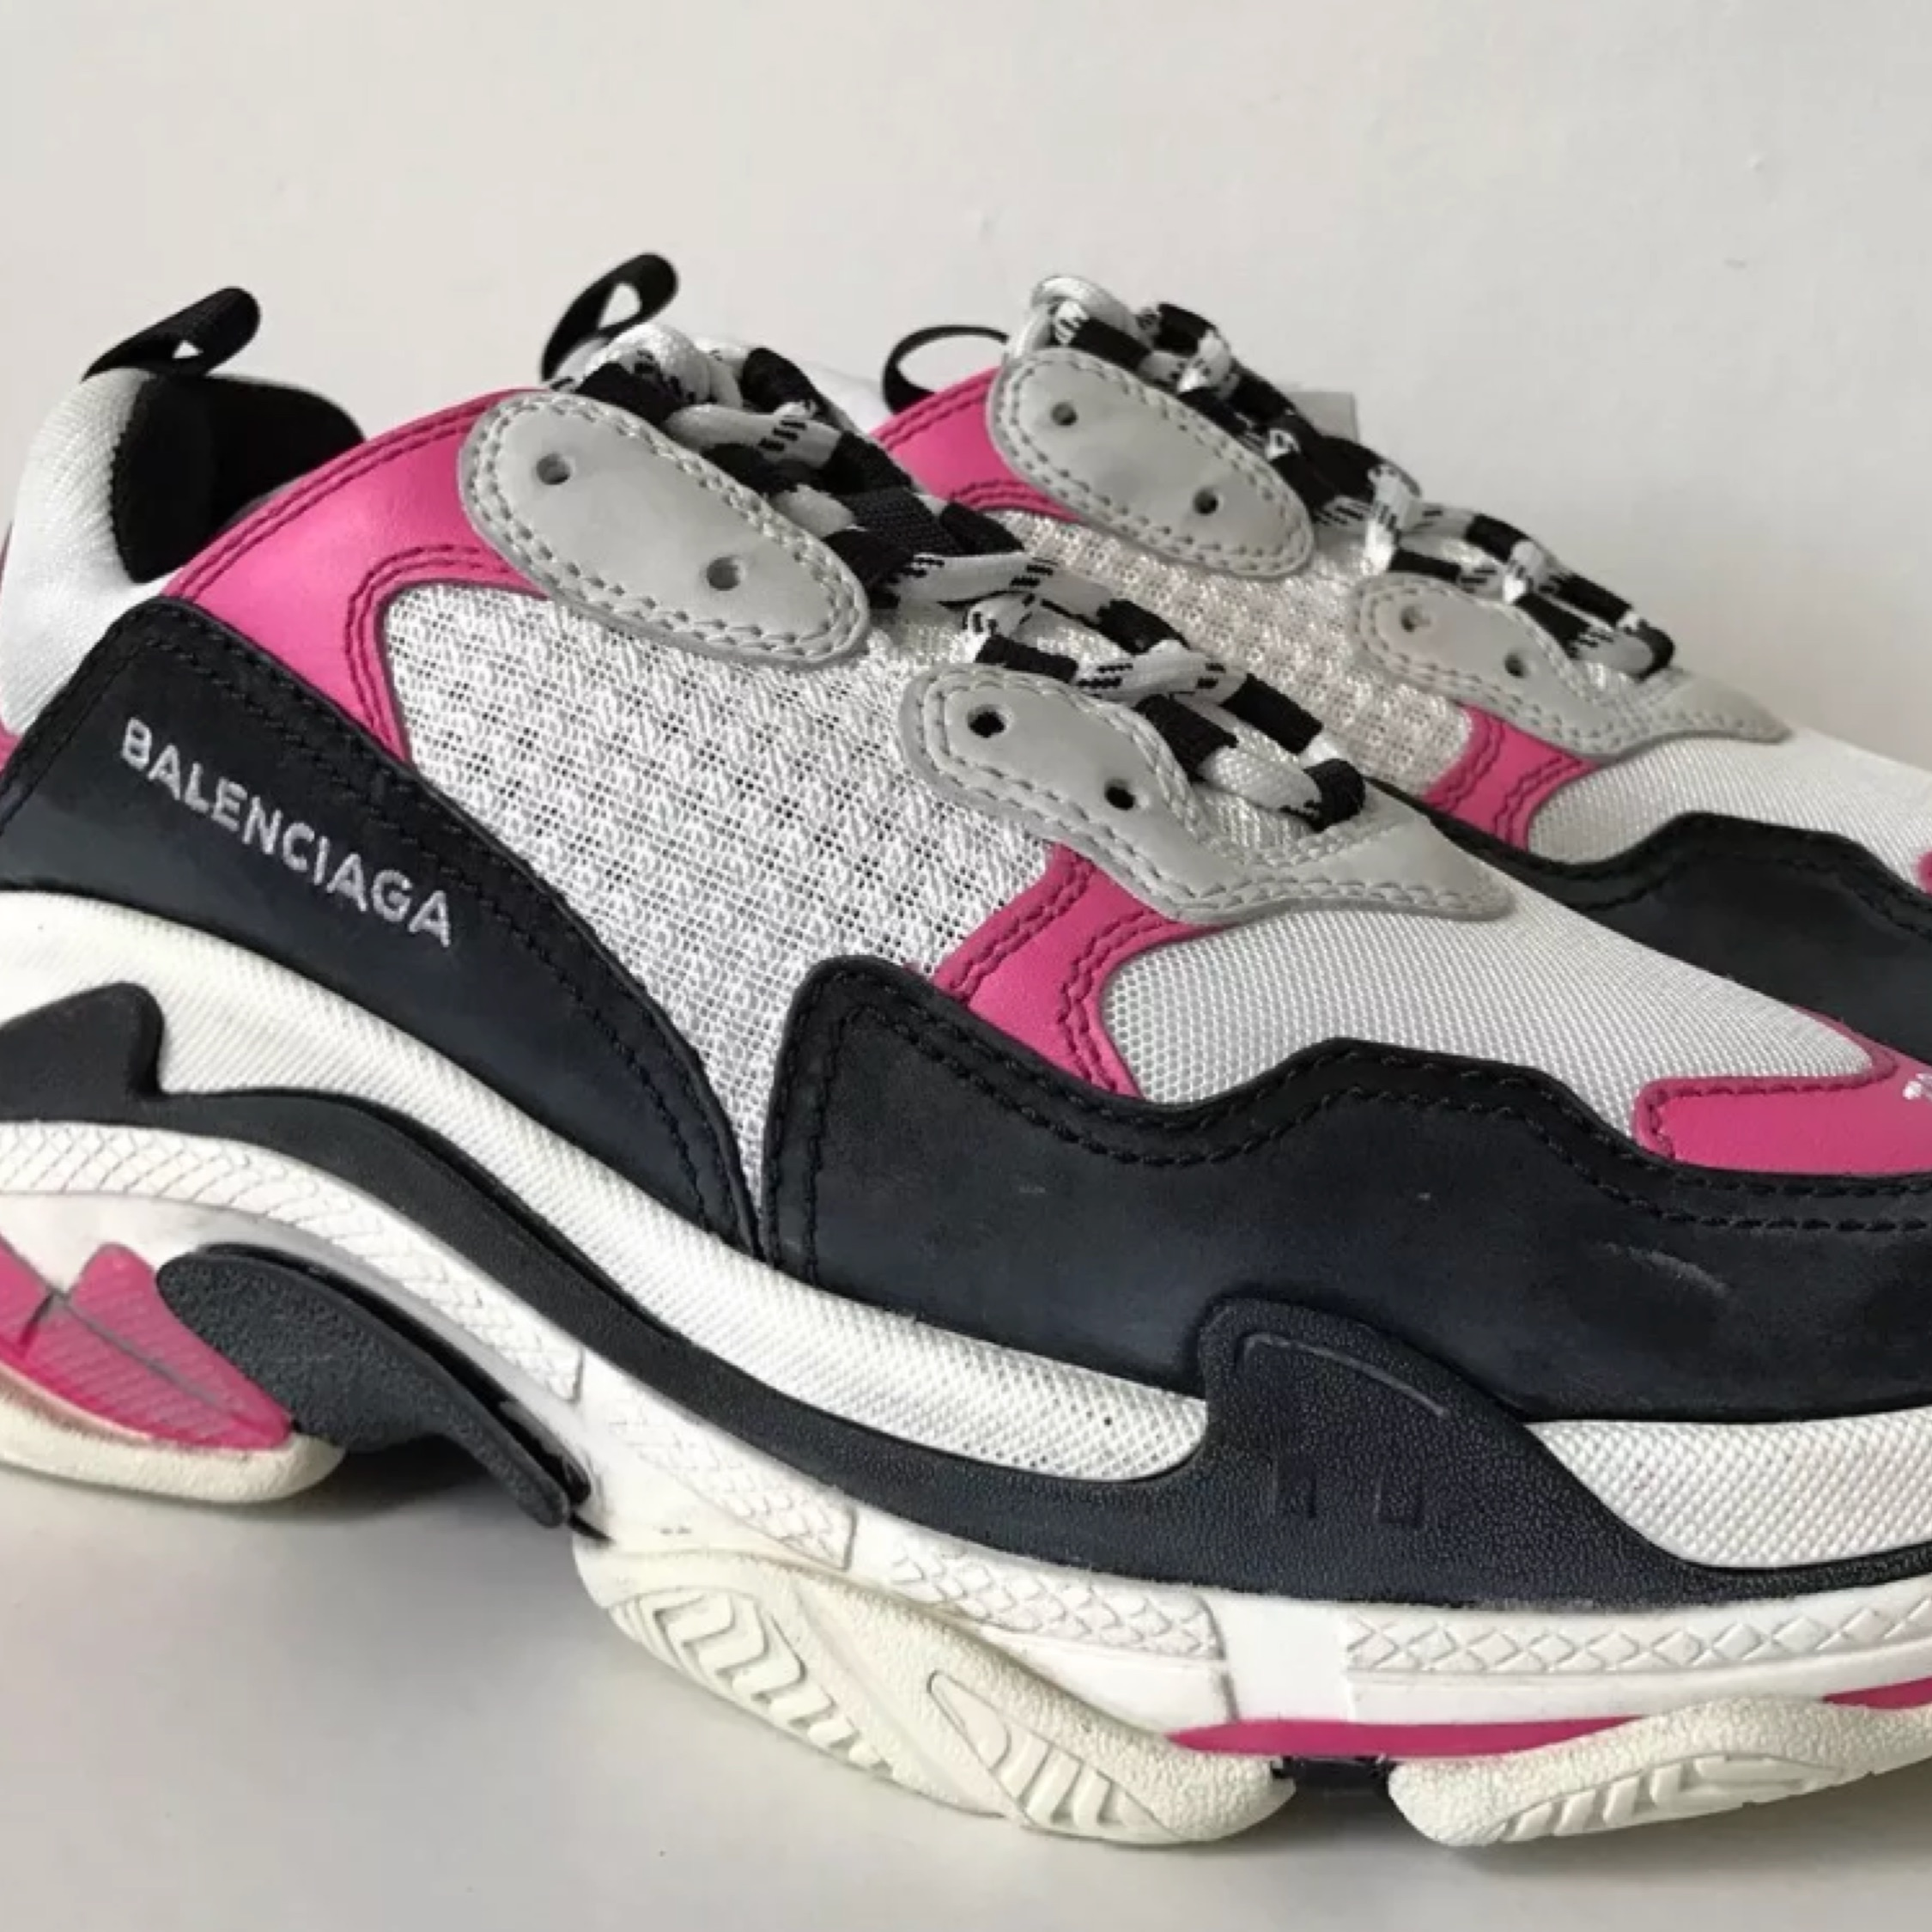 BALENCiAGA TRiPLE S UNBOXiNG AND HOW i GOT THESE